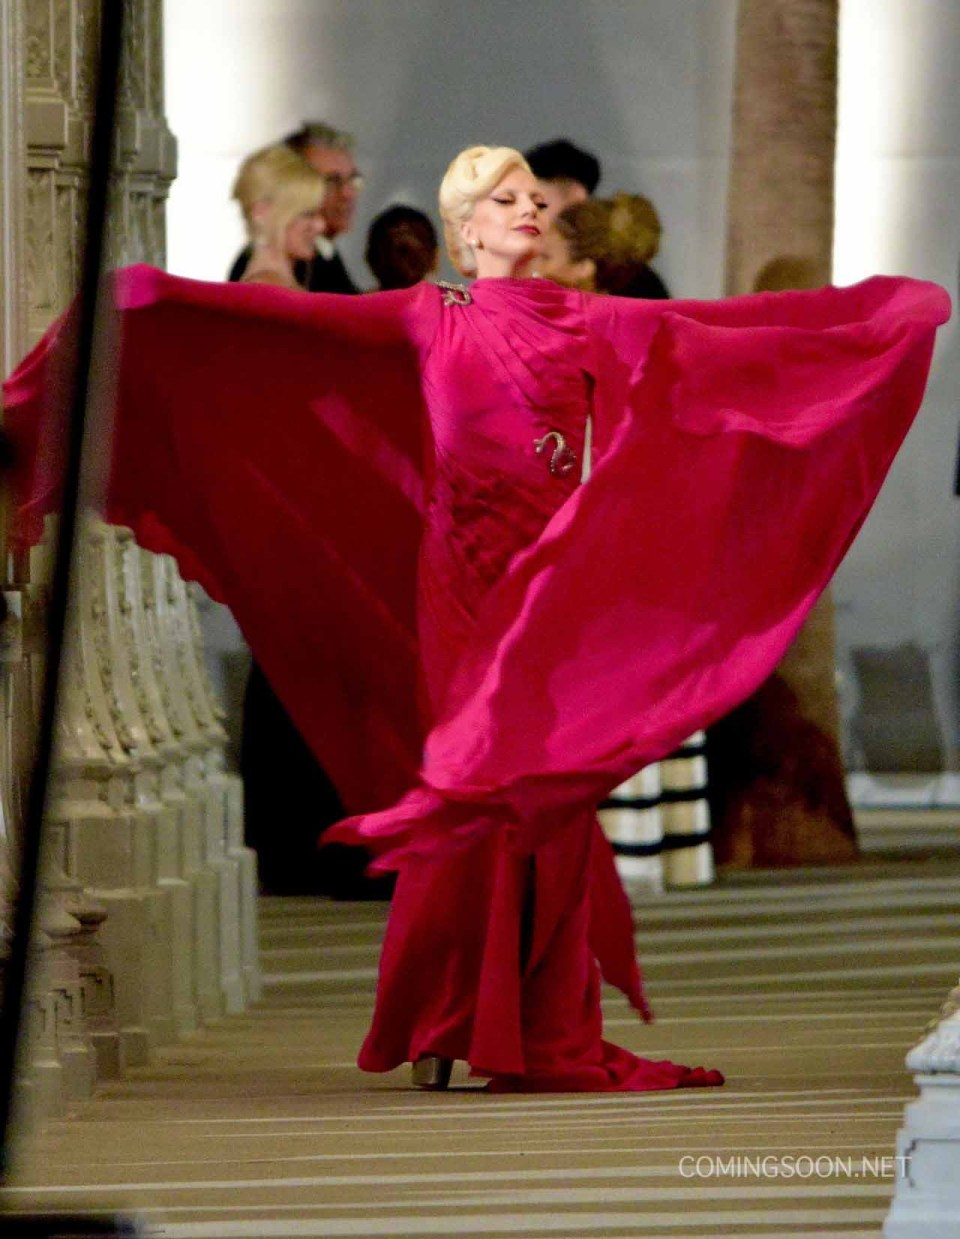 First Look At Lady Gaga On The American Horror Story: Hotel Set